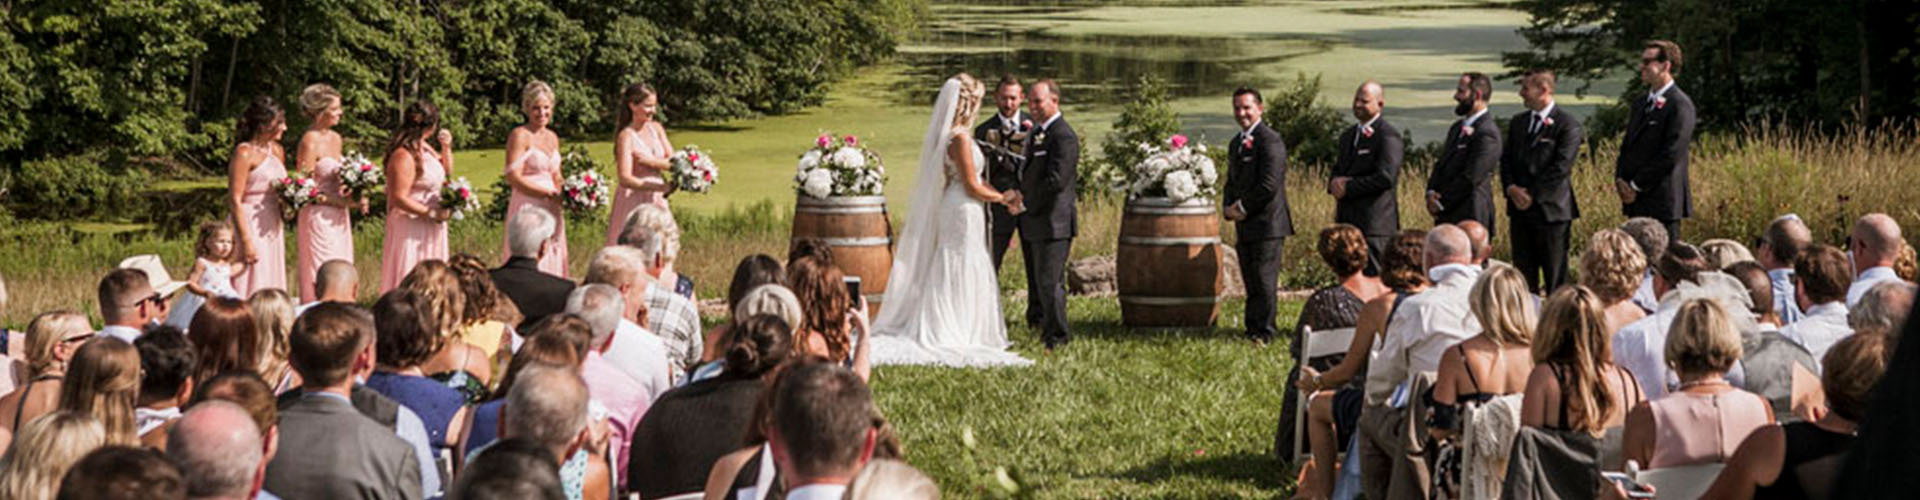 Hudson Valley Wedding Venue - Magnanini Vineyard and Winery